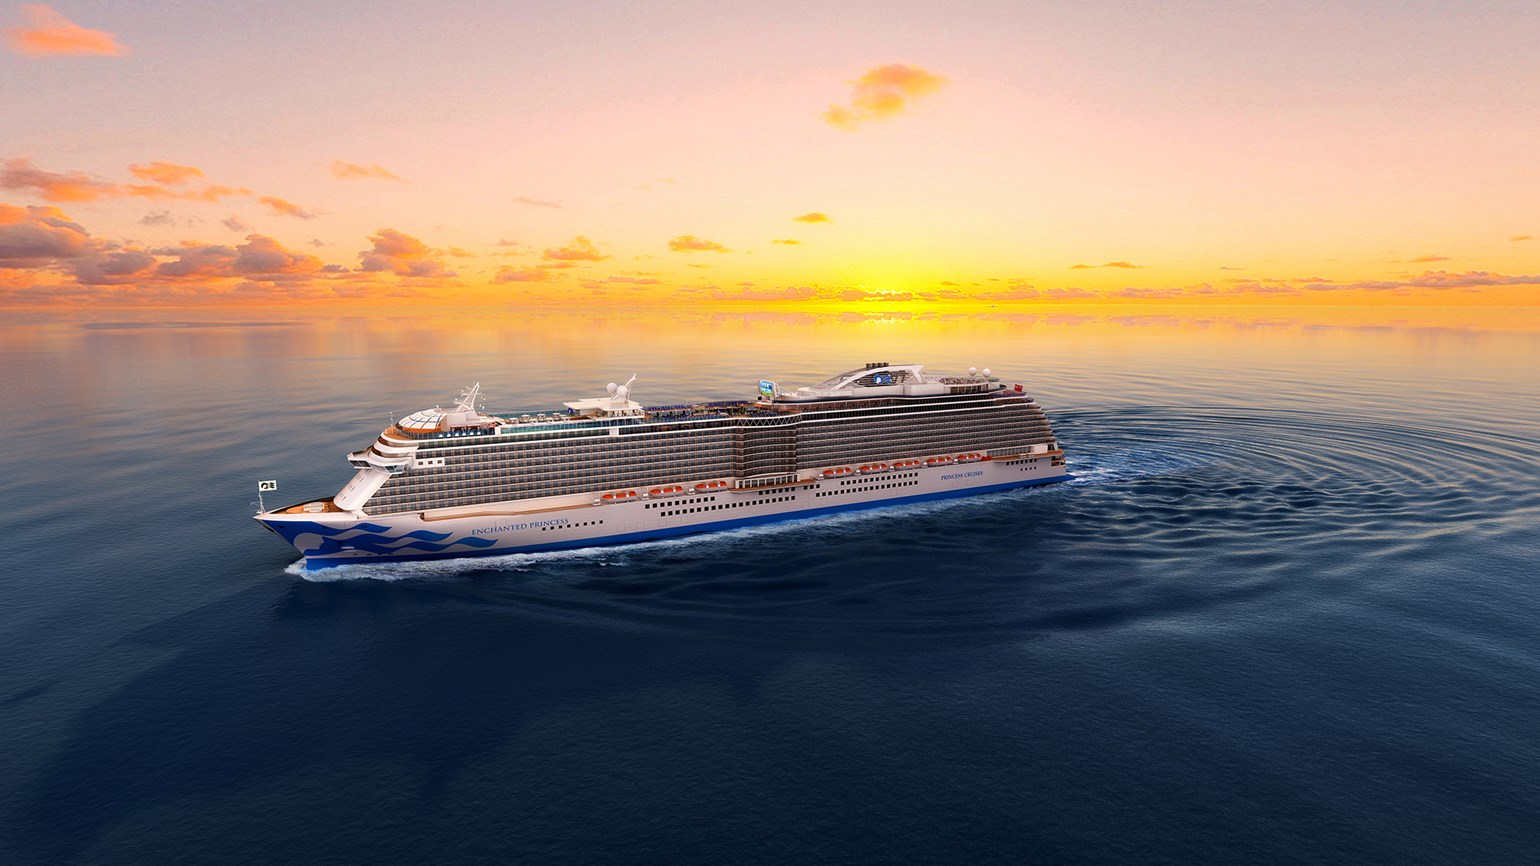 Princess names 2020 ship Enchanted Princess